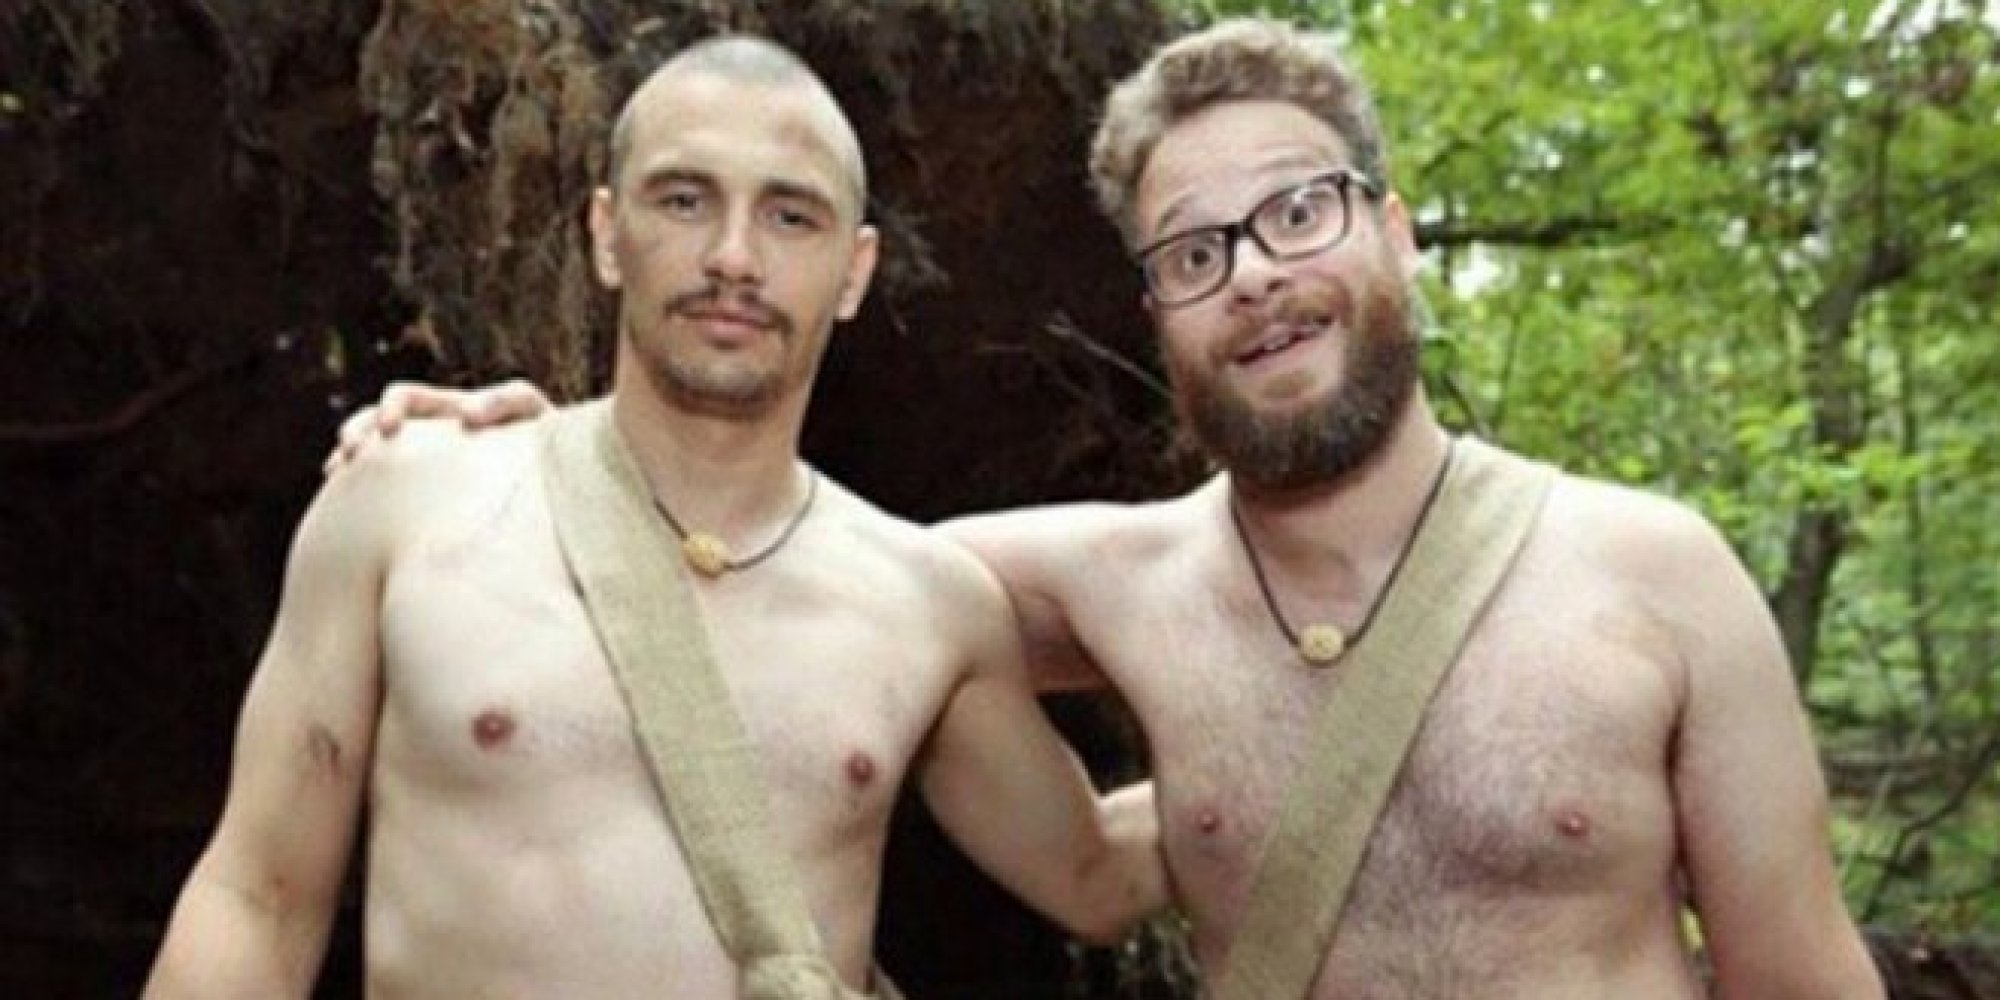 James Franco Girlfriend History Pretty james franco and seth rogen are naked, just chillin' in the